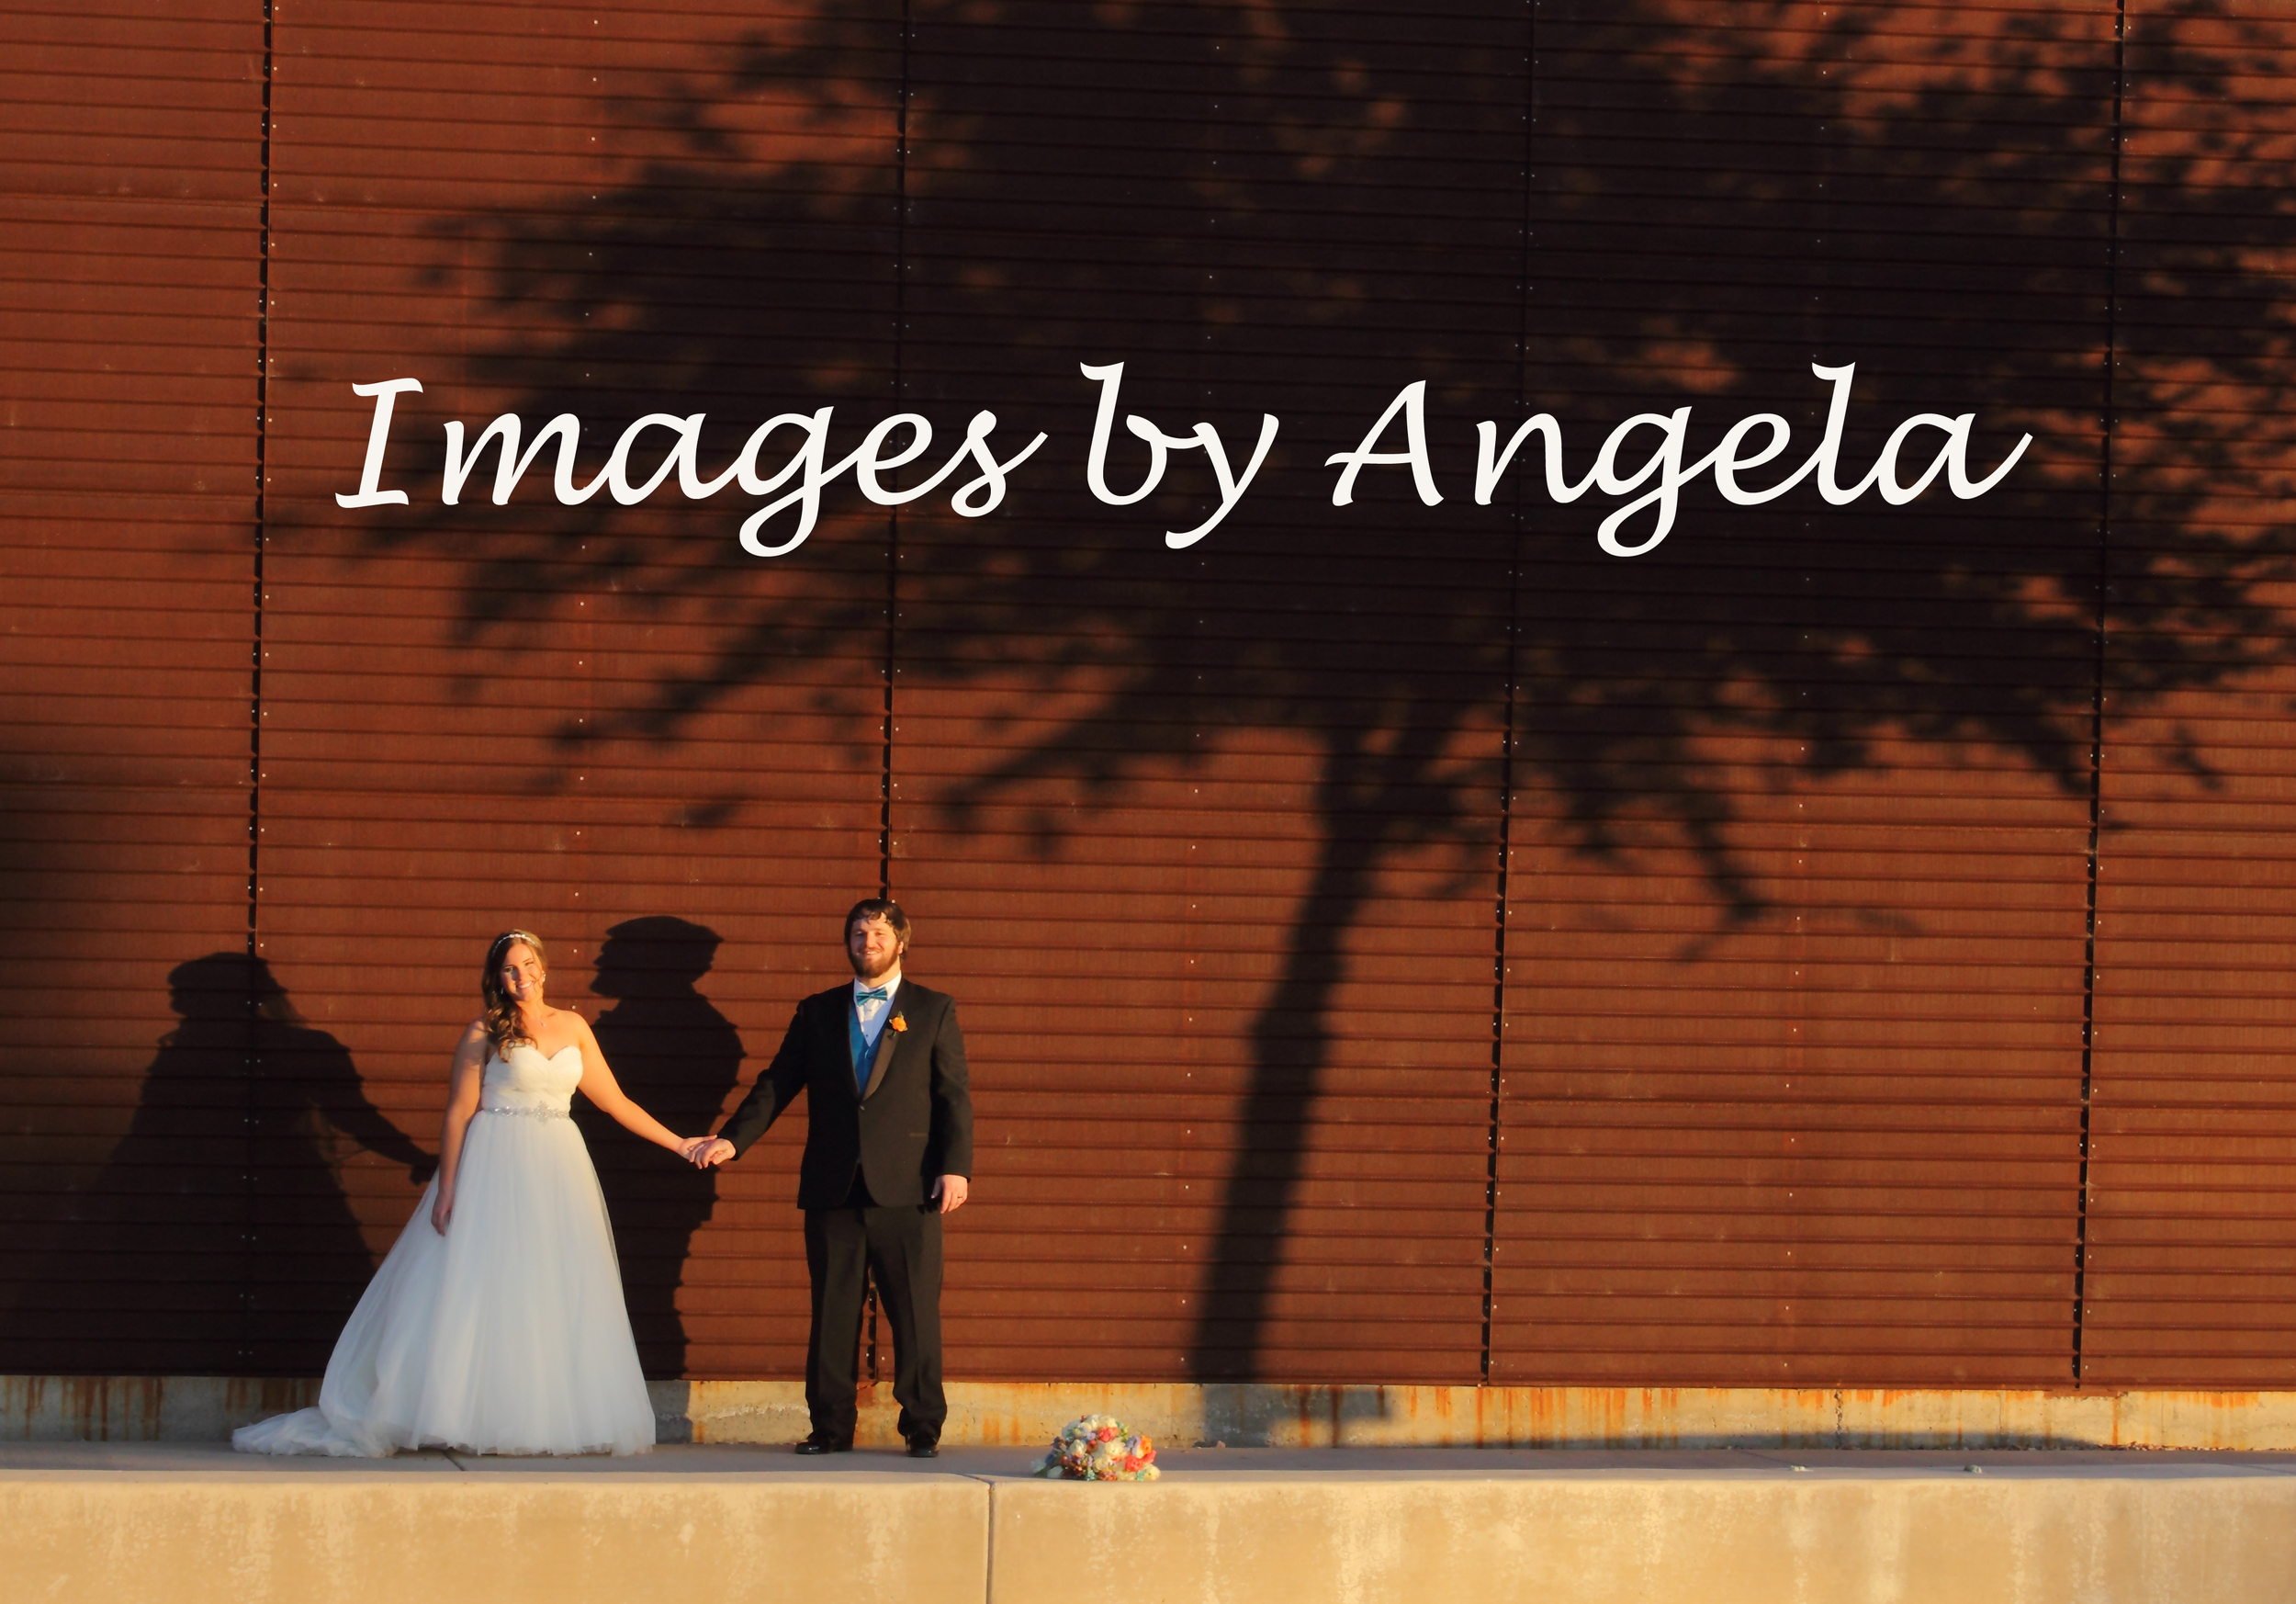 Images by Angela Logo.jpg